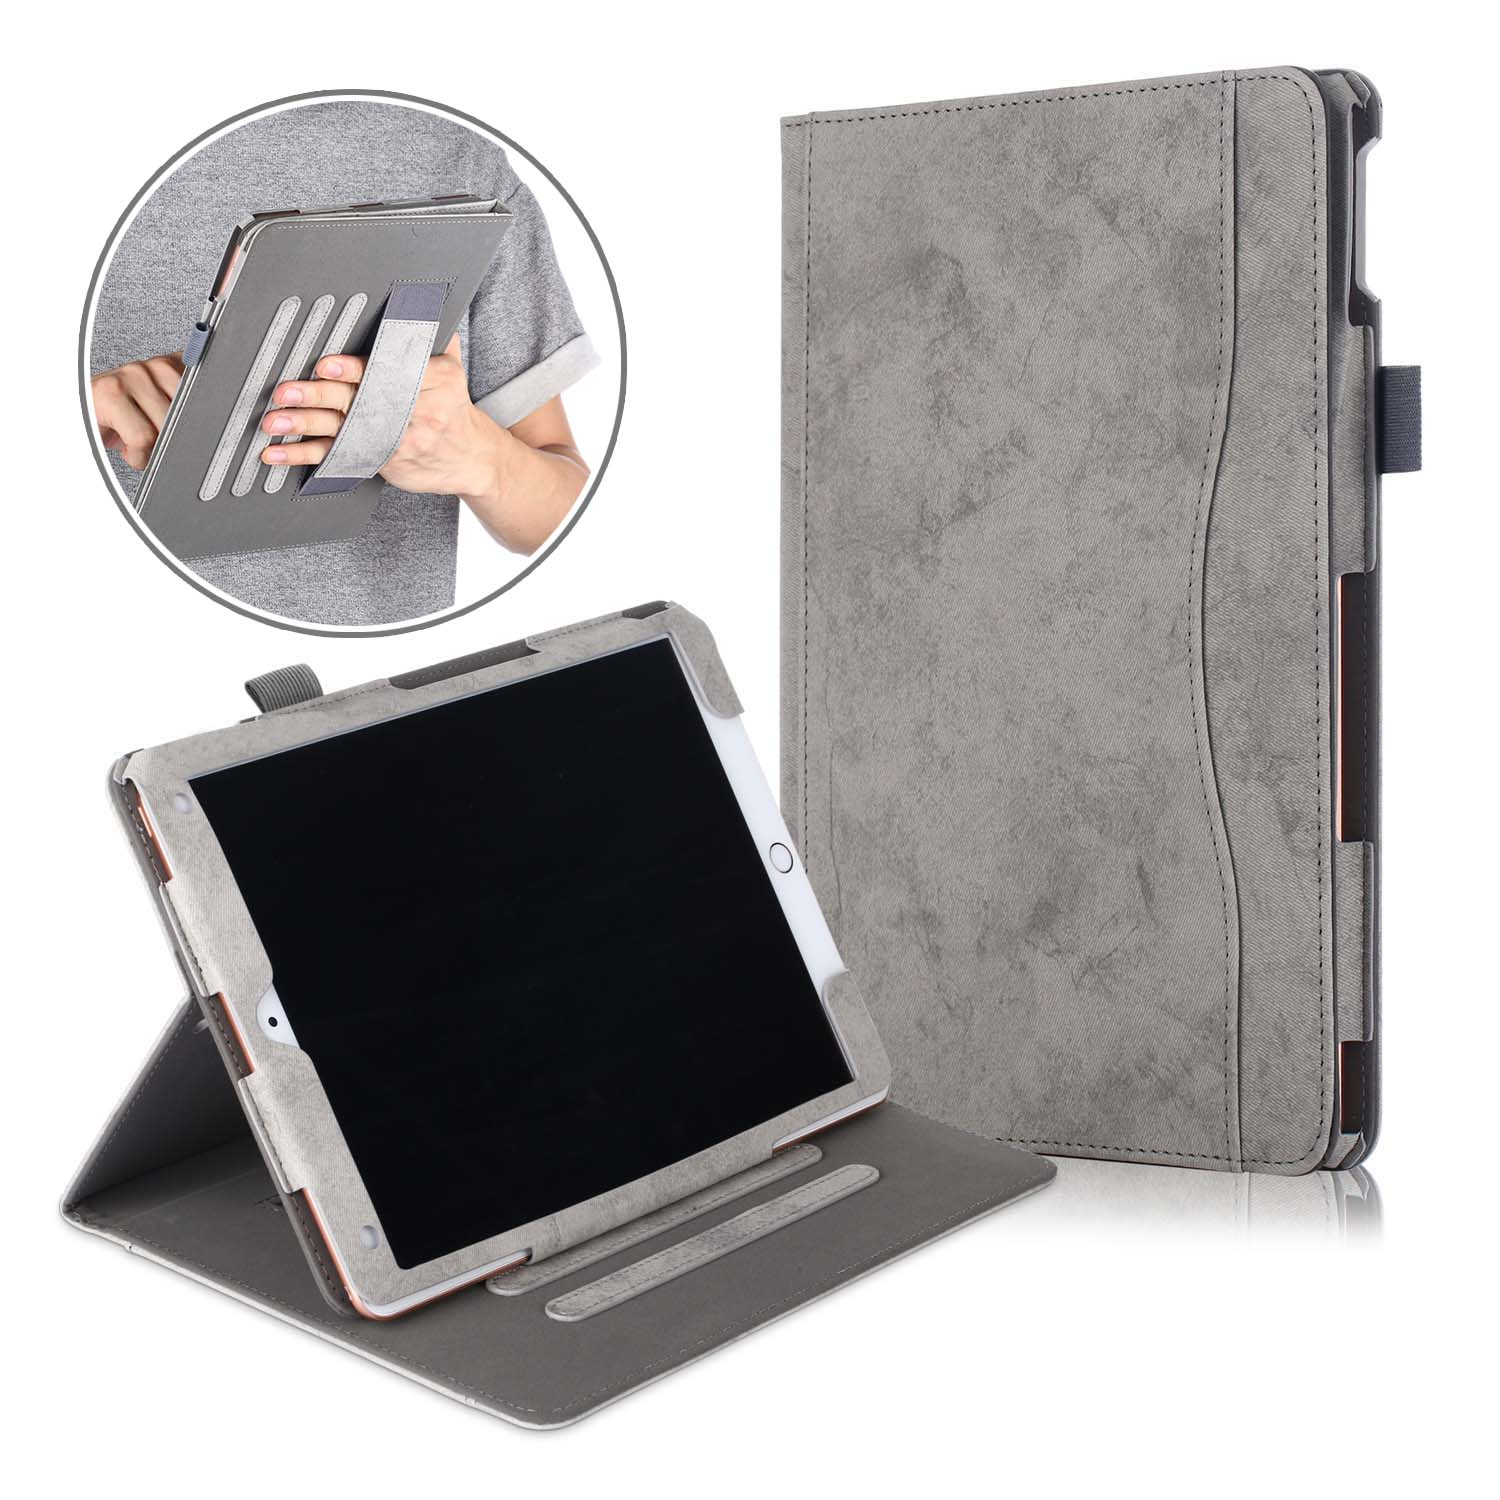 PU leather tablet cover case for <strong>ipad</strong> 10.2 10.5 Inch 2019